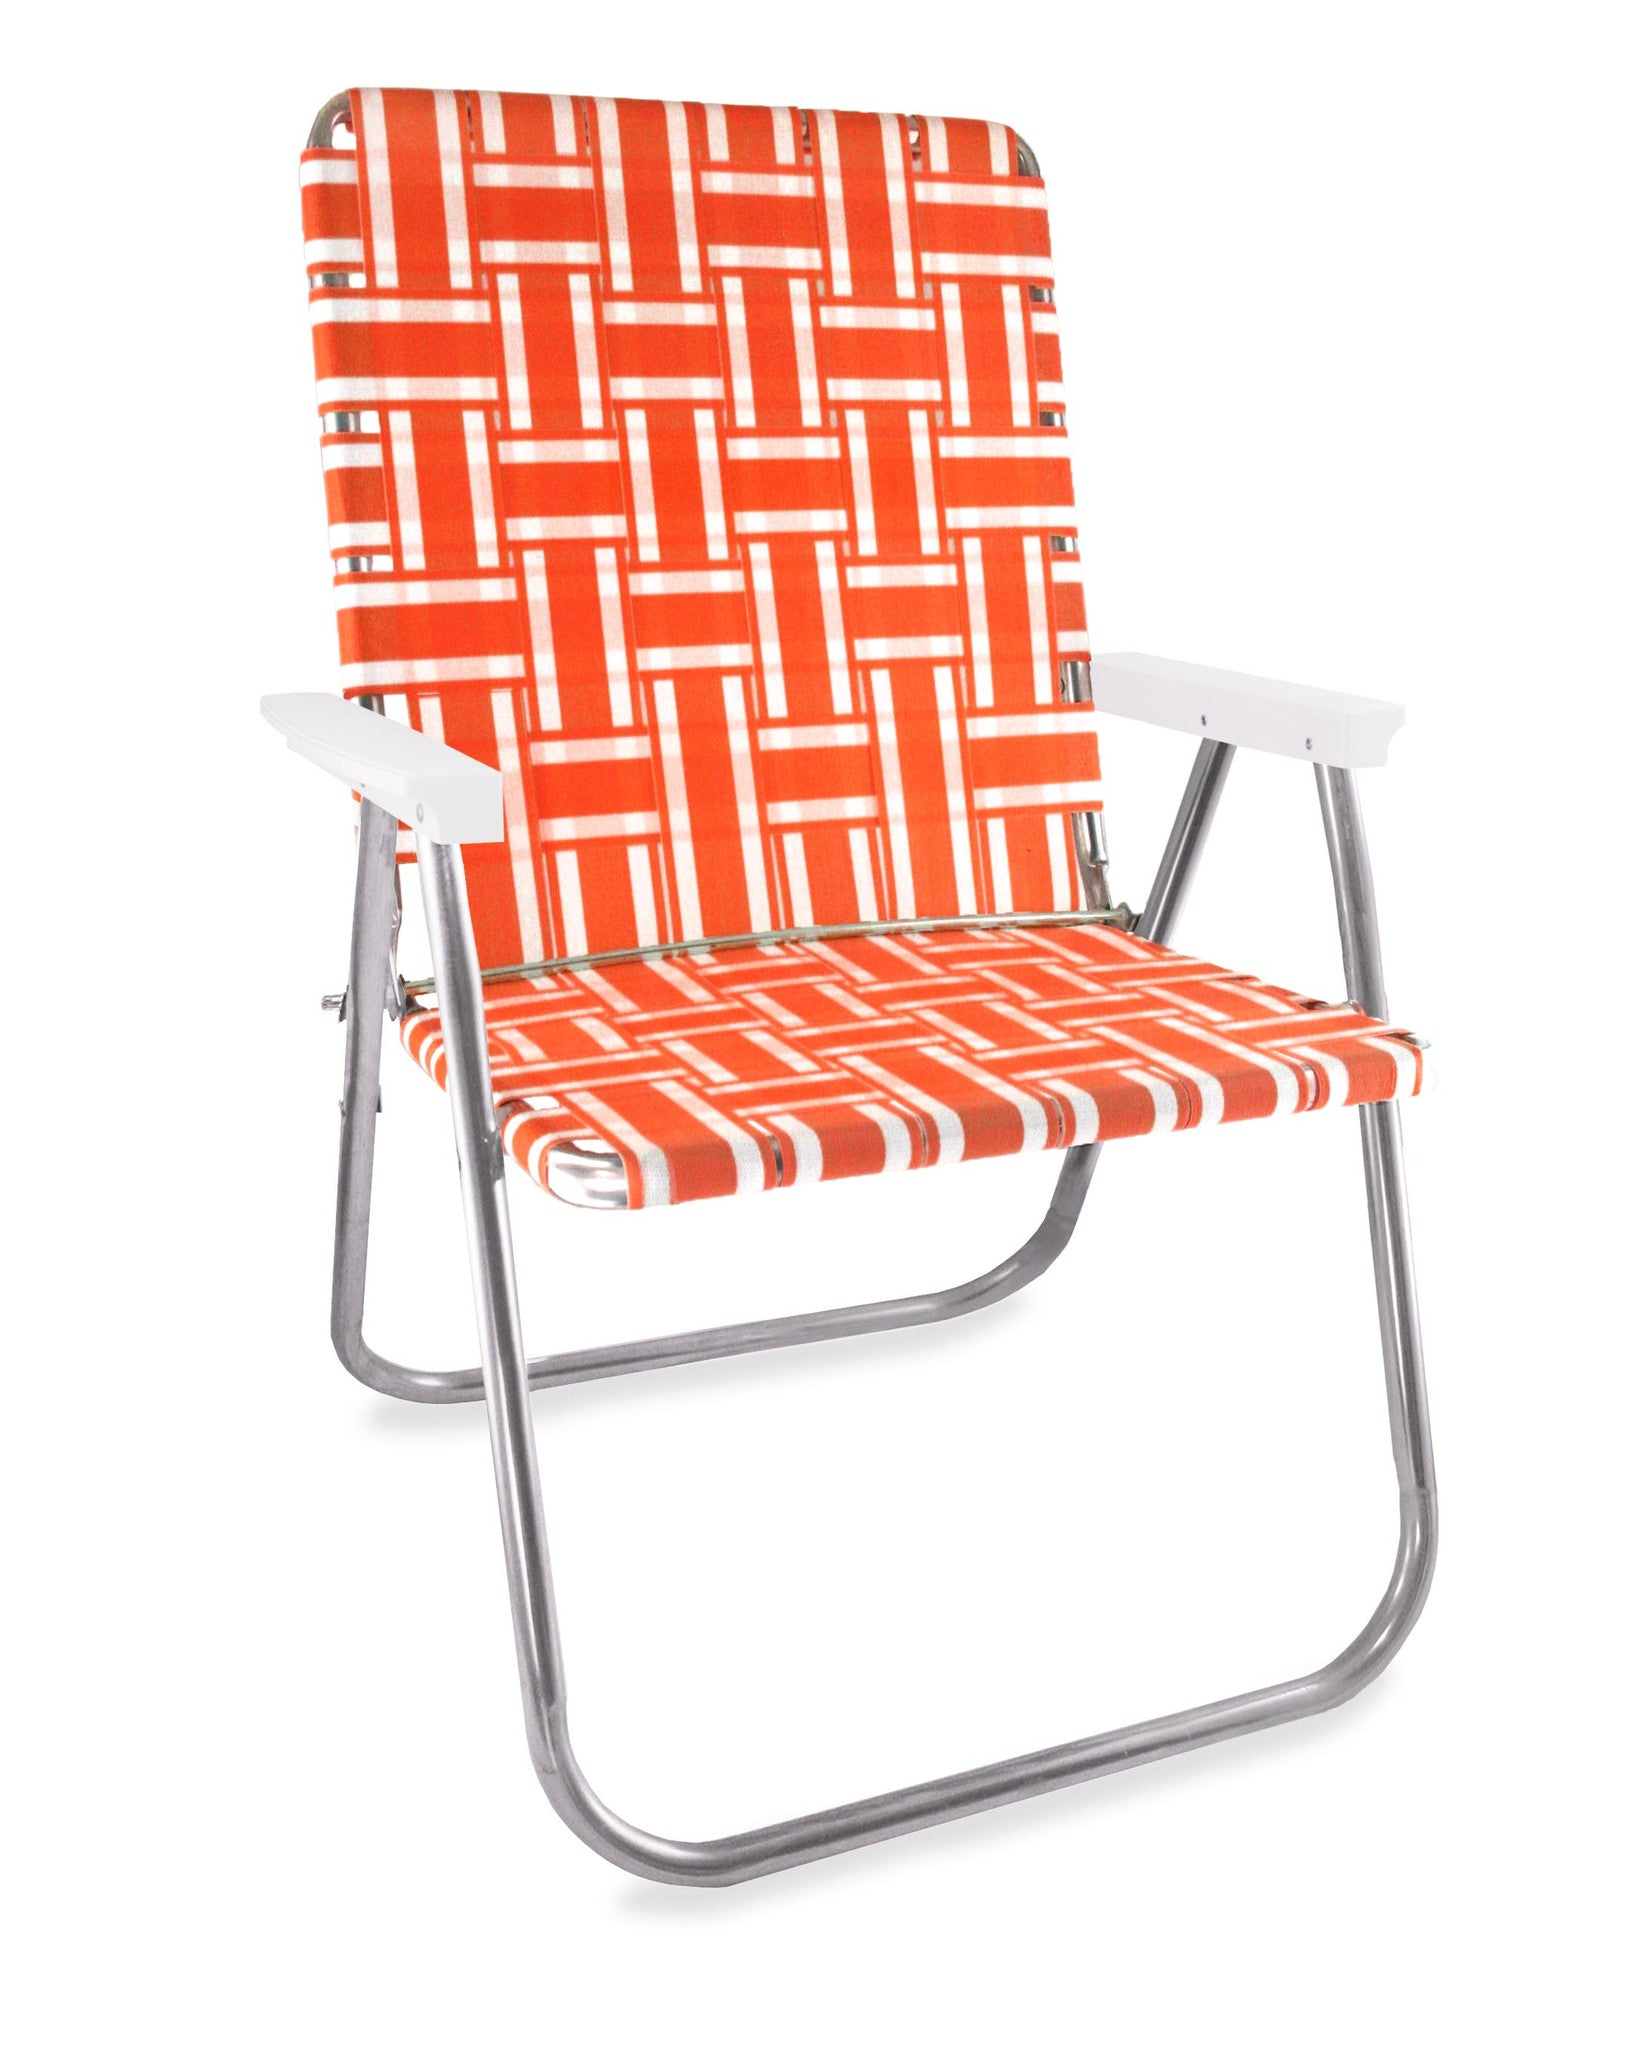 Incroyable Orange And White Stripe Folding Aluminum Webbing Lawn Chair Magnum